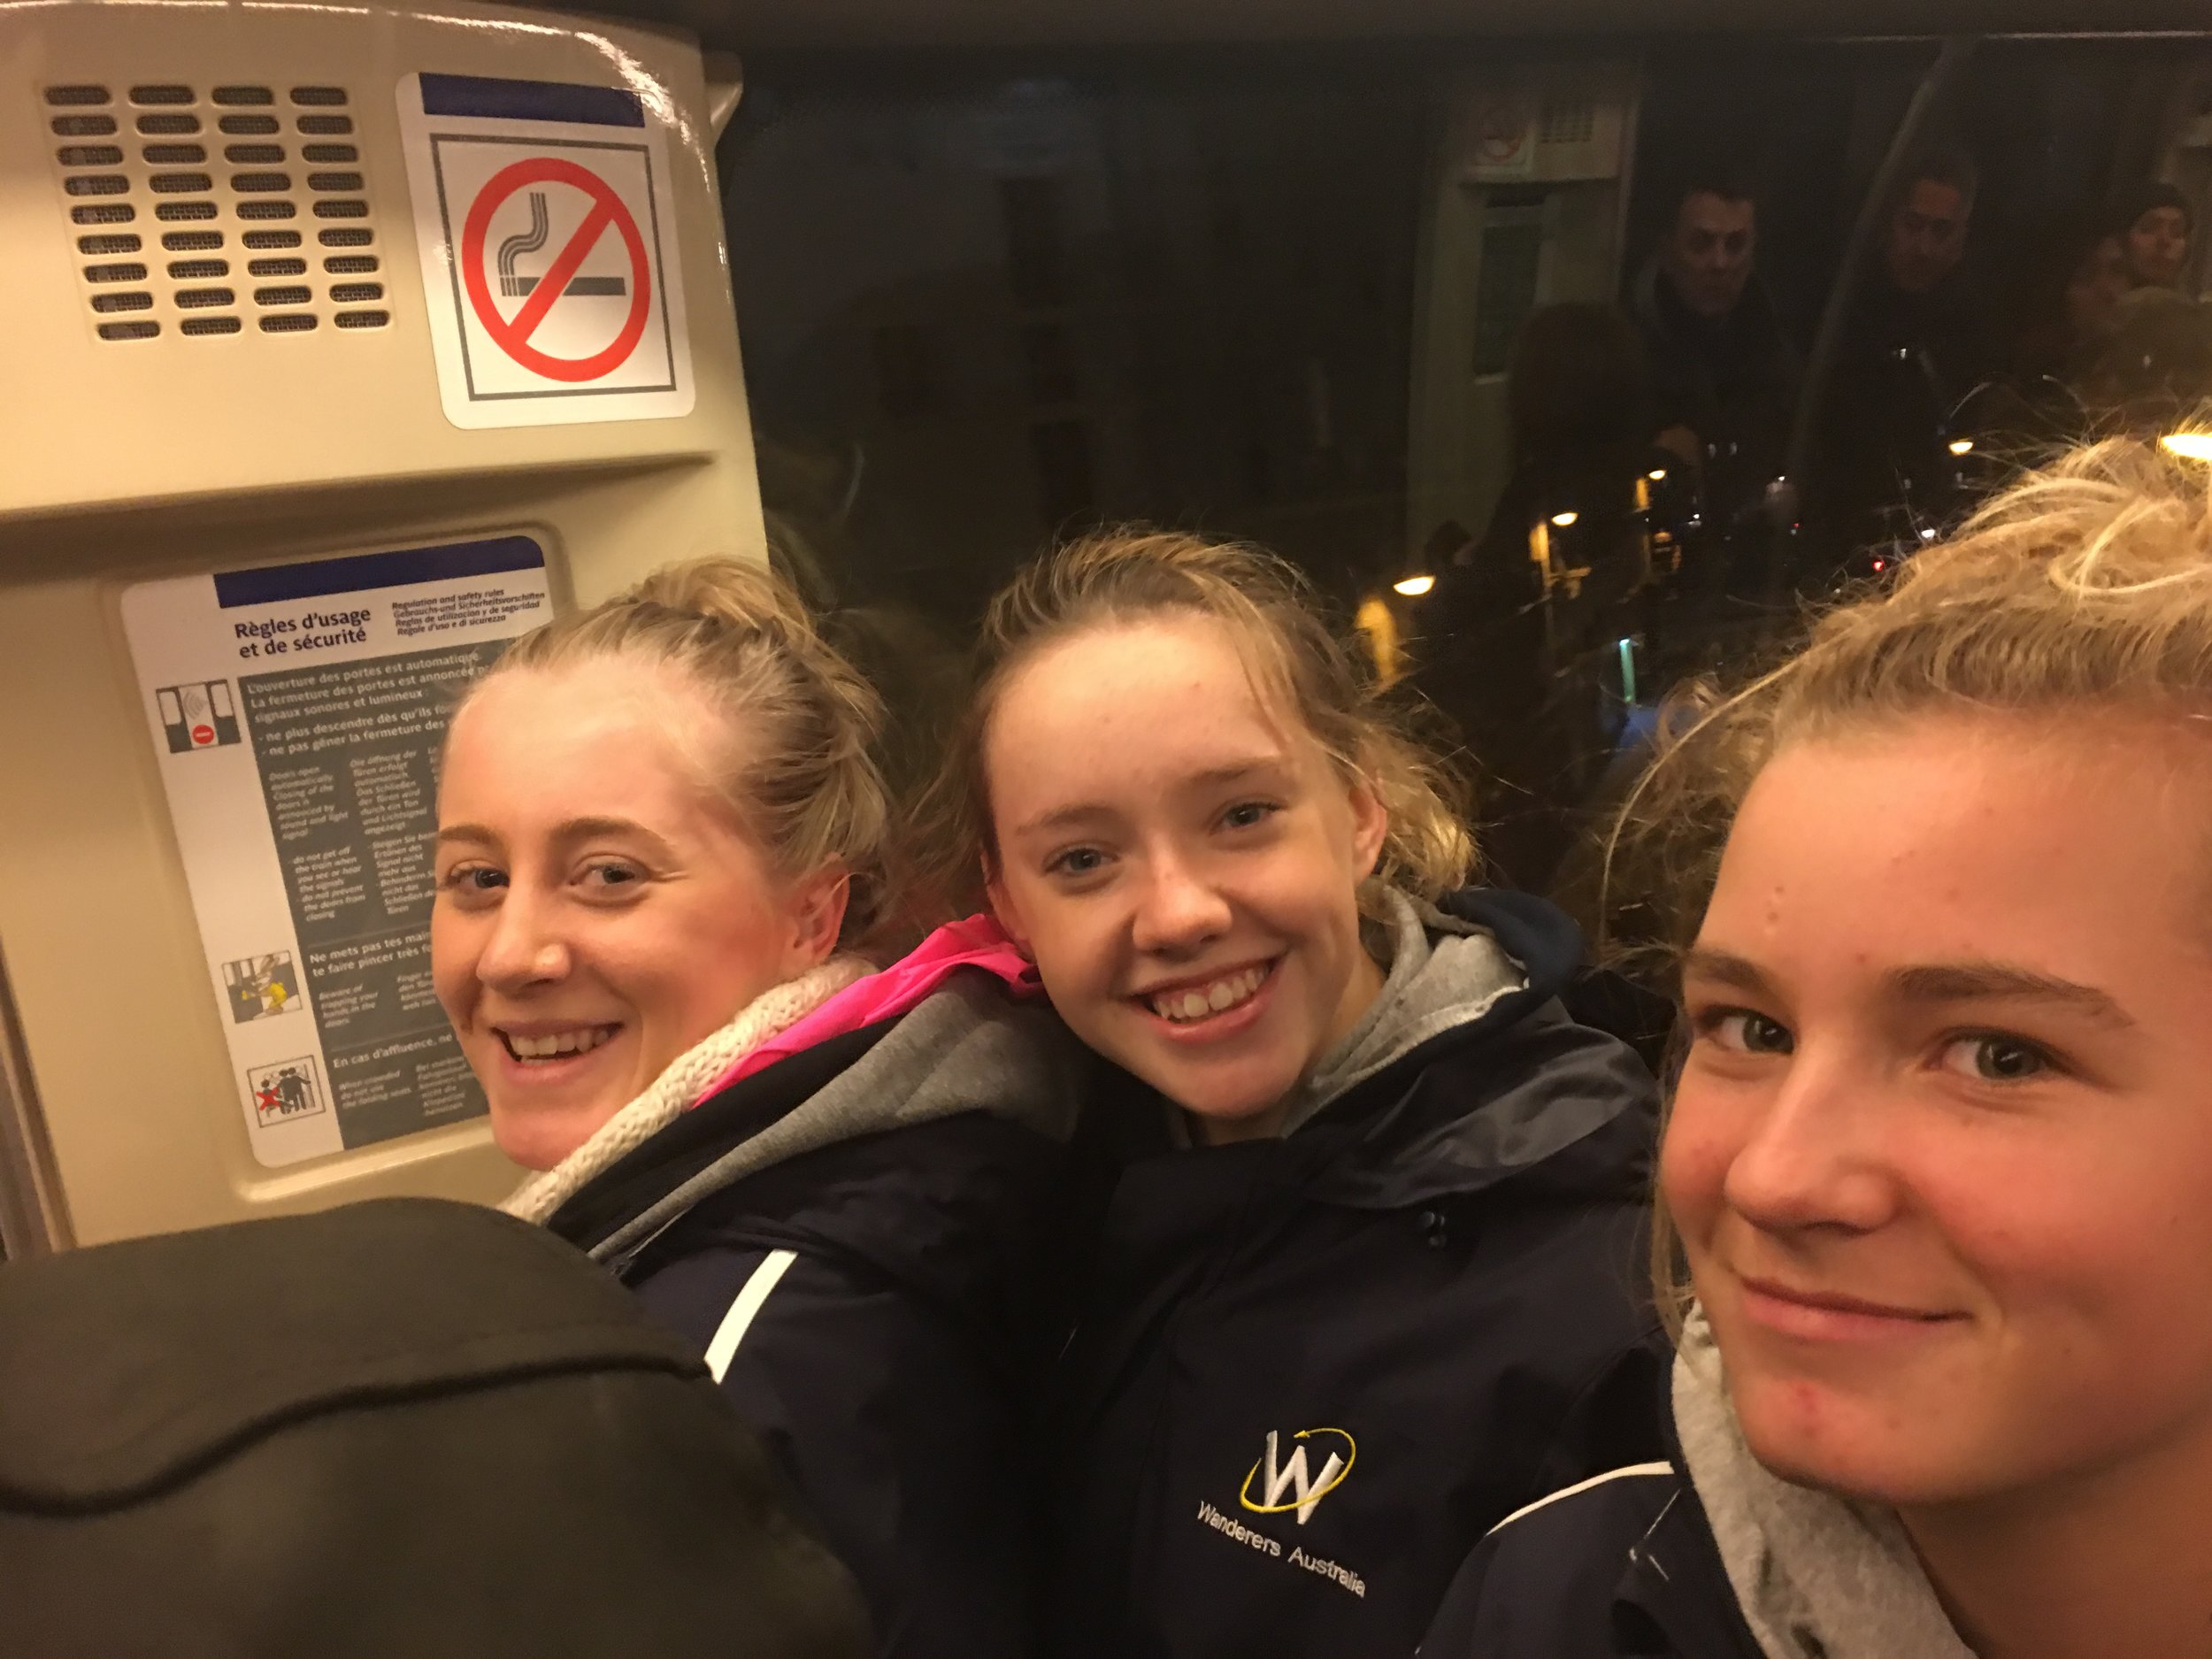 Girls cramming into the train - packed in like sardines